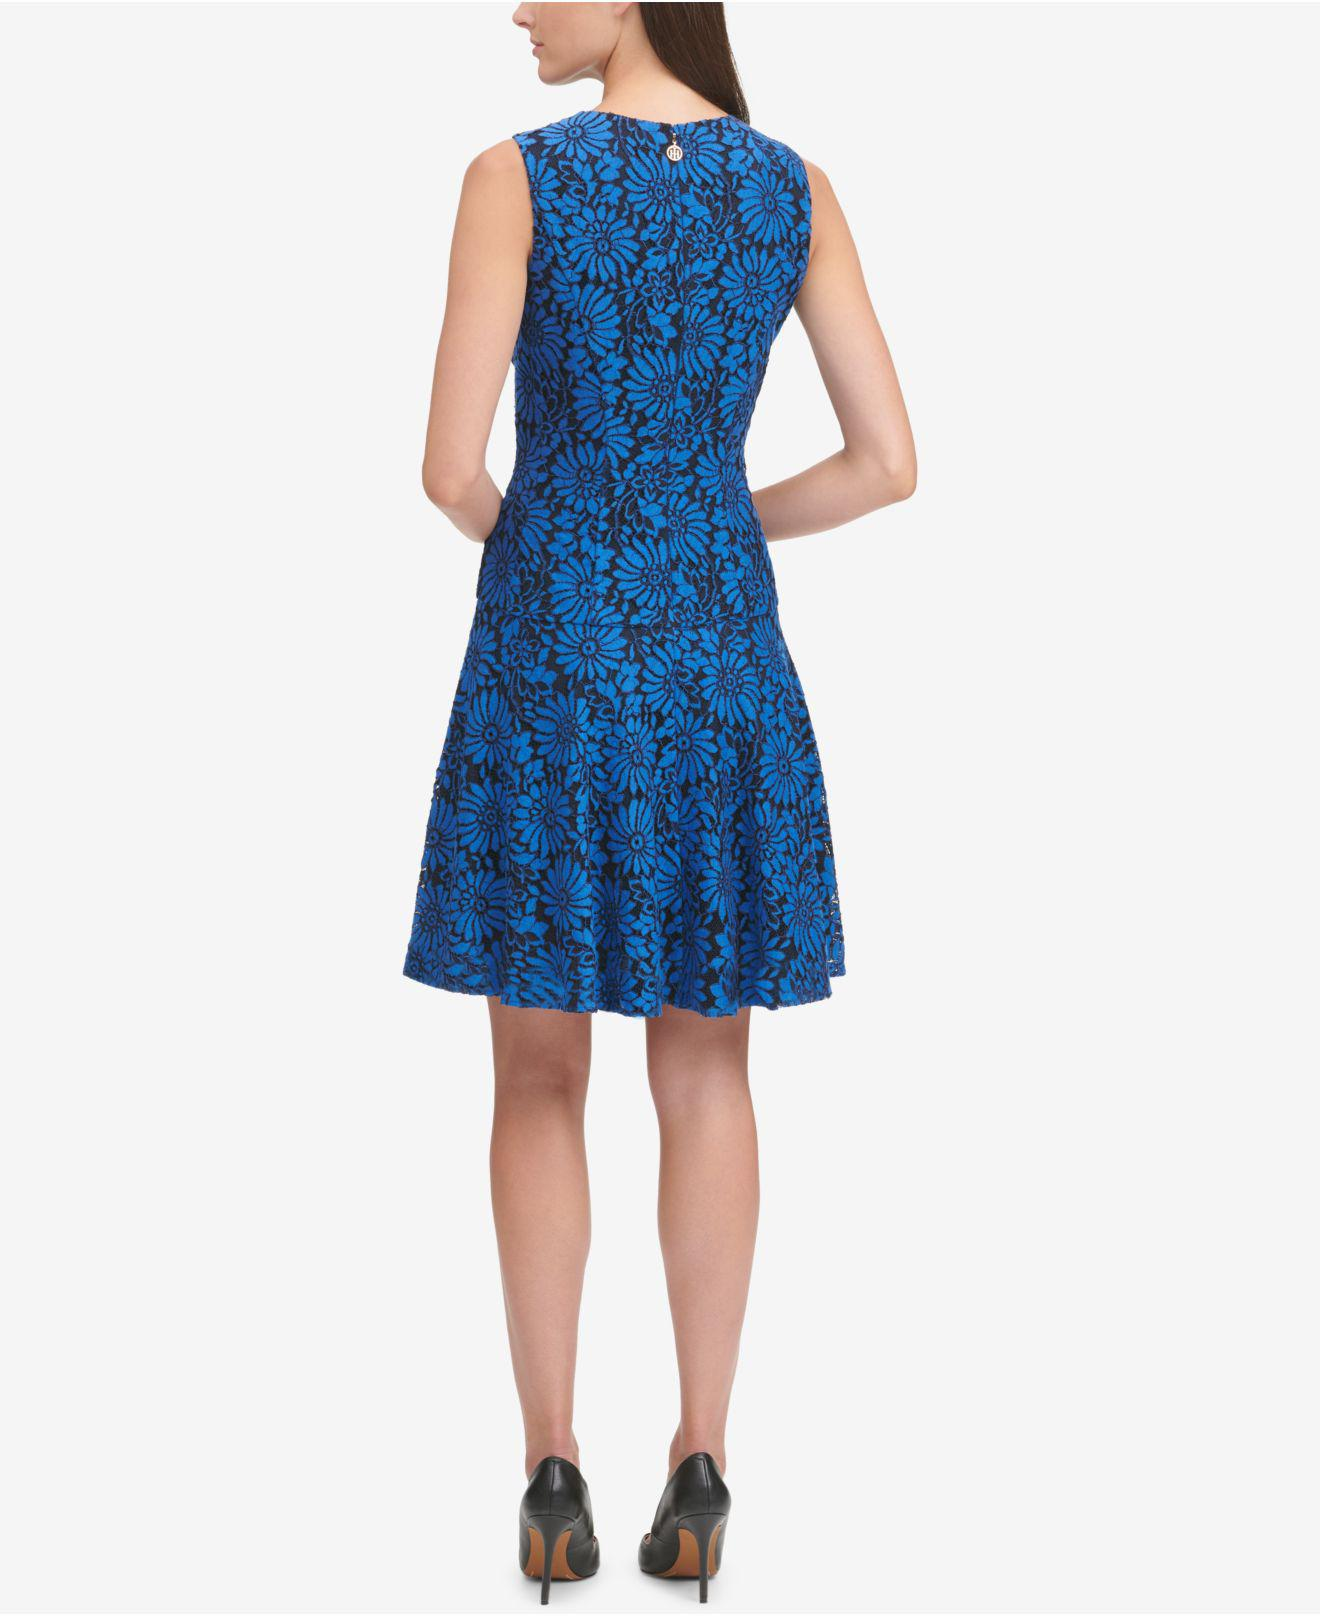 d421796b6be Lyst - Tommy Hilfiger Lace Fit   Flare Dress in Blue